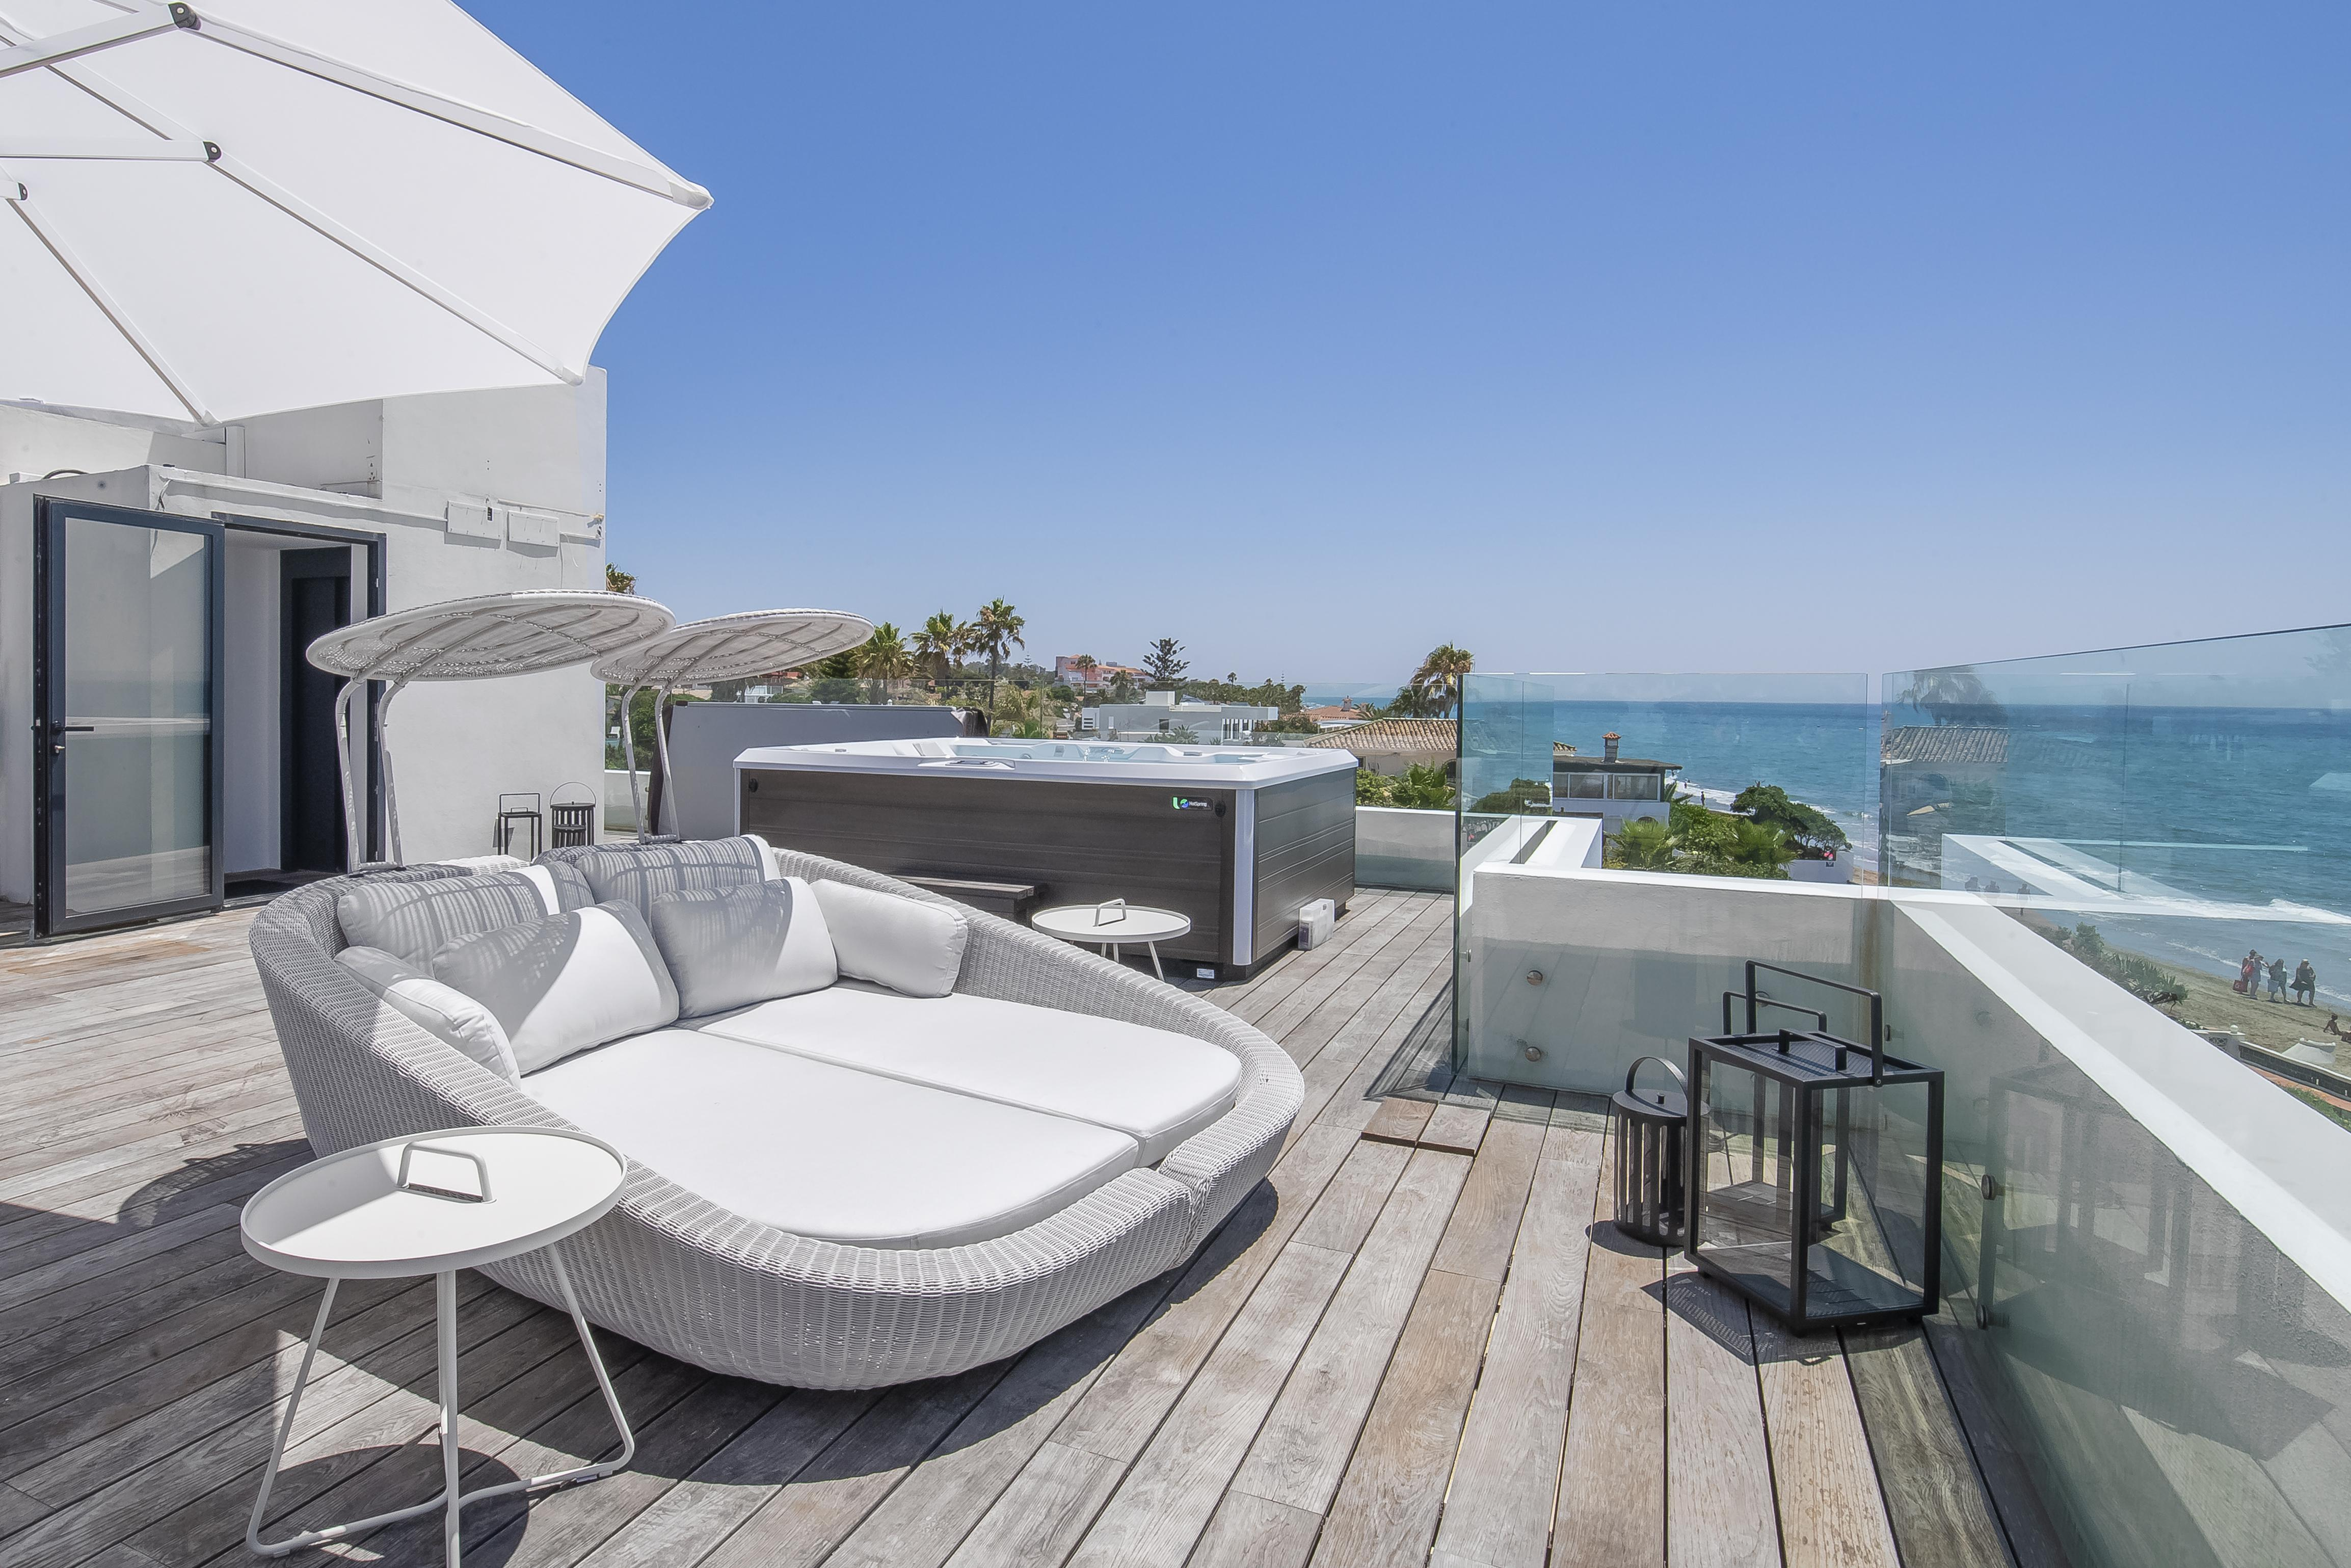 Costabella Beachfront, Villa available for Holiday Rental in Las Chapas, Marbella, Spain